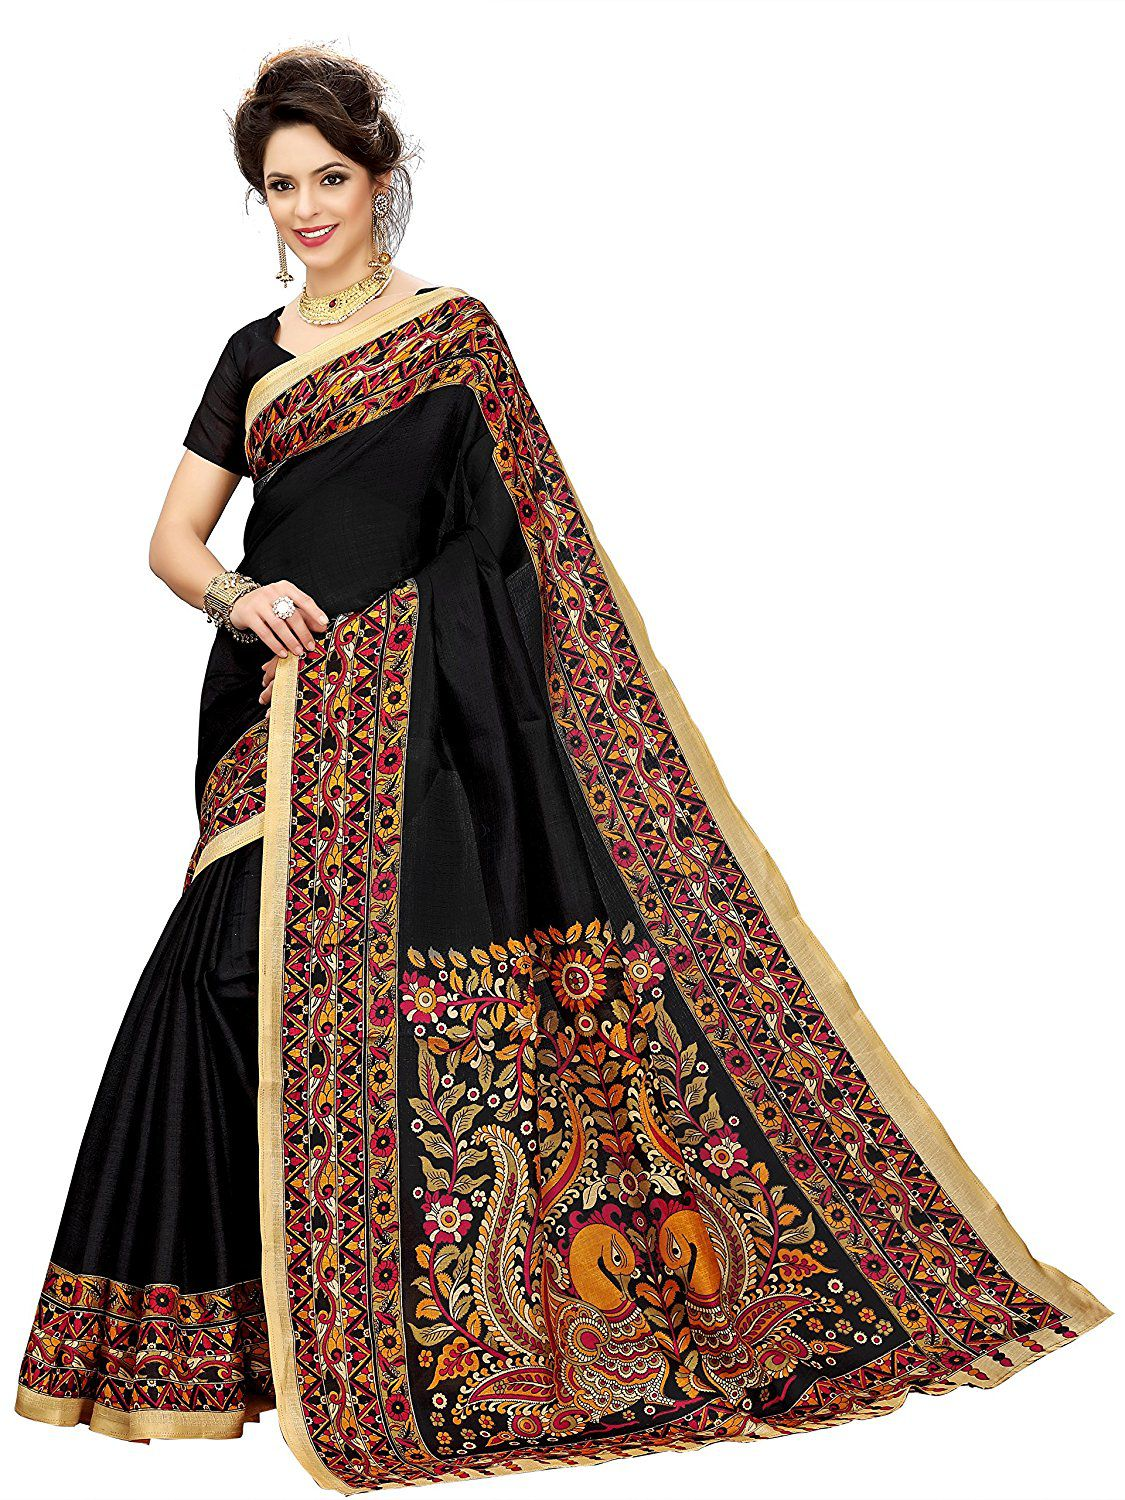 a403274ee15 KANCHAN TEXTILES Brown and Beige Cotton Silk Saree - Buy KANCHAN TEXTILES  Brown and Beige Cotton Silk Saree Online at Low Price - Snapdeal.com